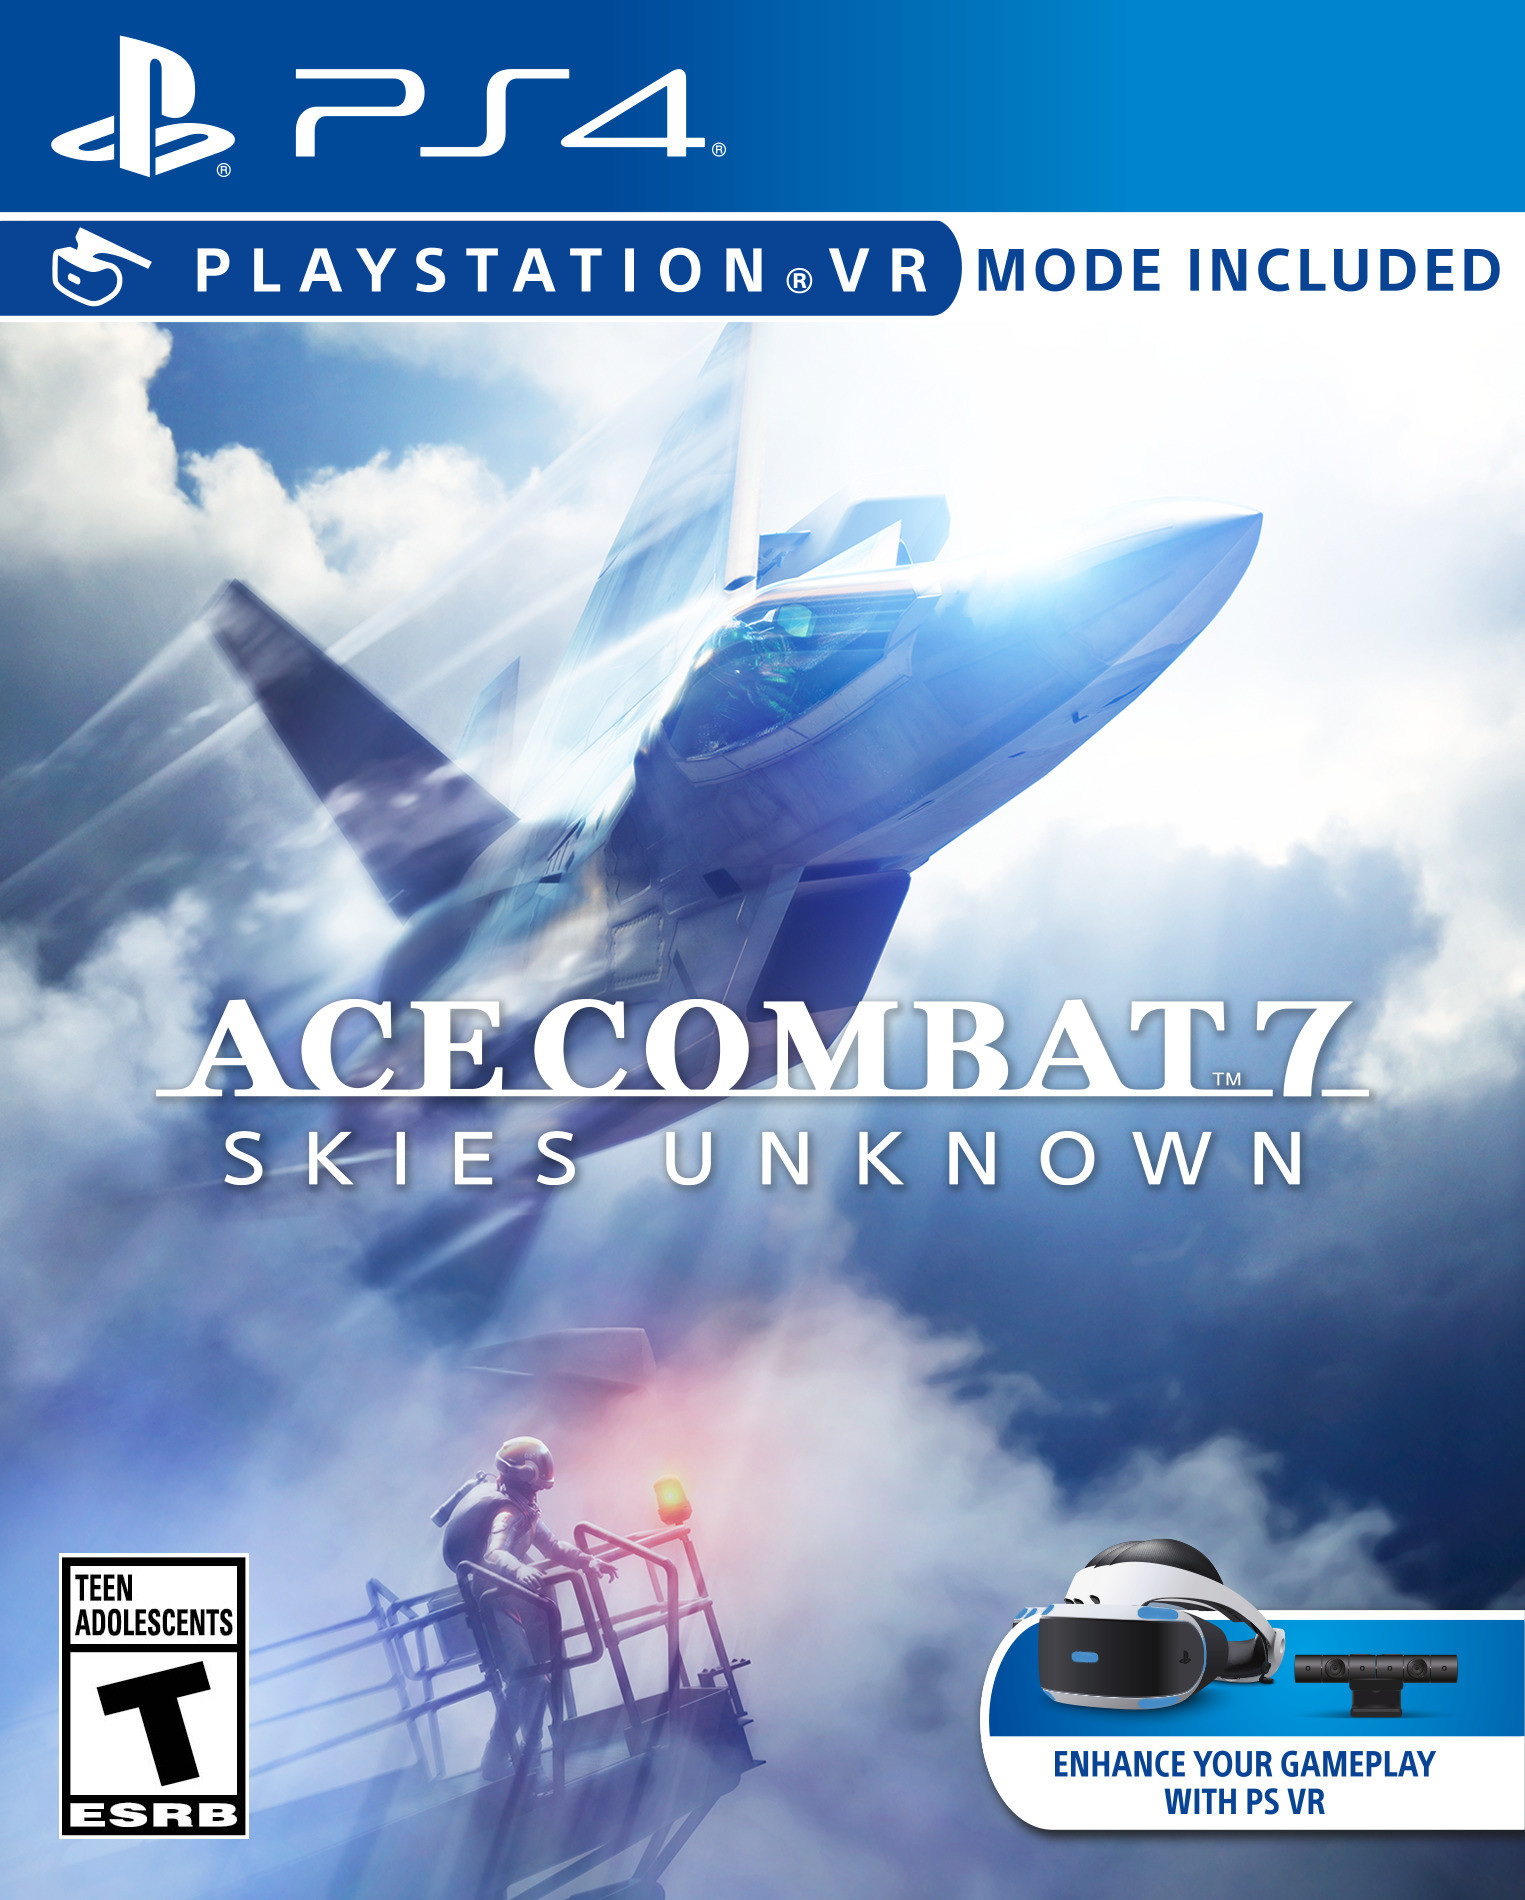 Ace Combat 7: Skies Unknown [PS4 VR] 5.05 / 6.72 / 7.02 [EUR] (2019) [Русский] (v1.00)